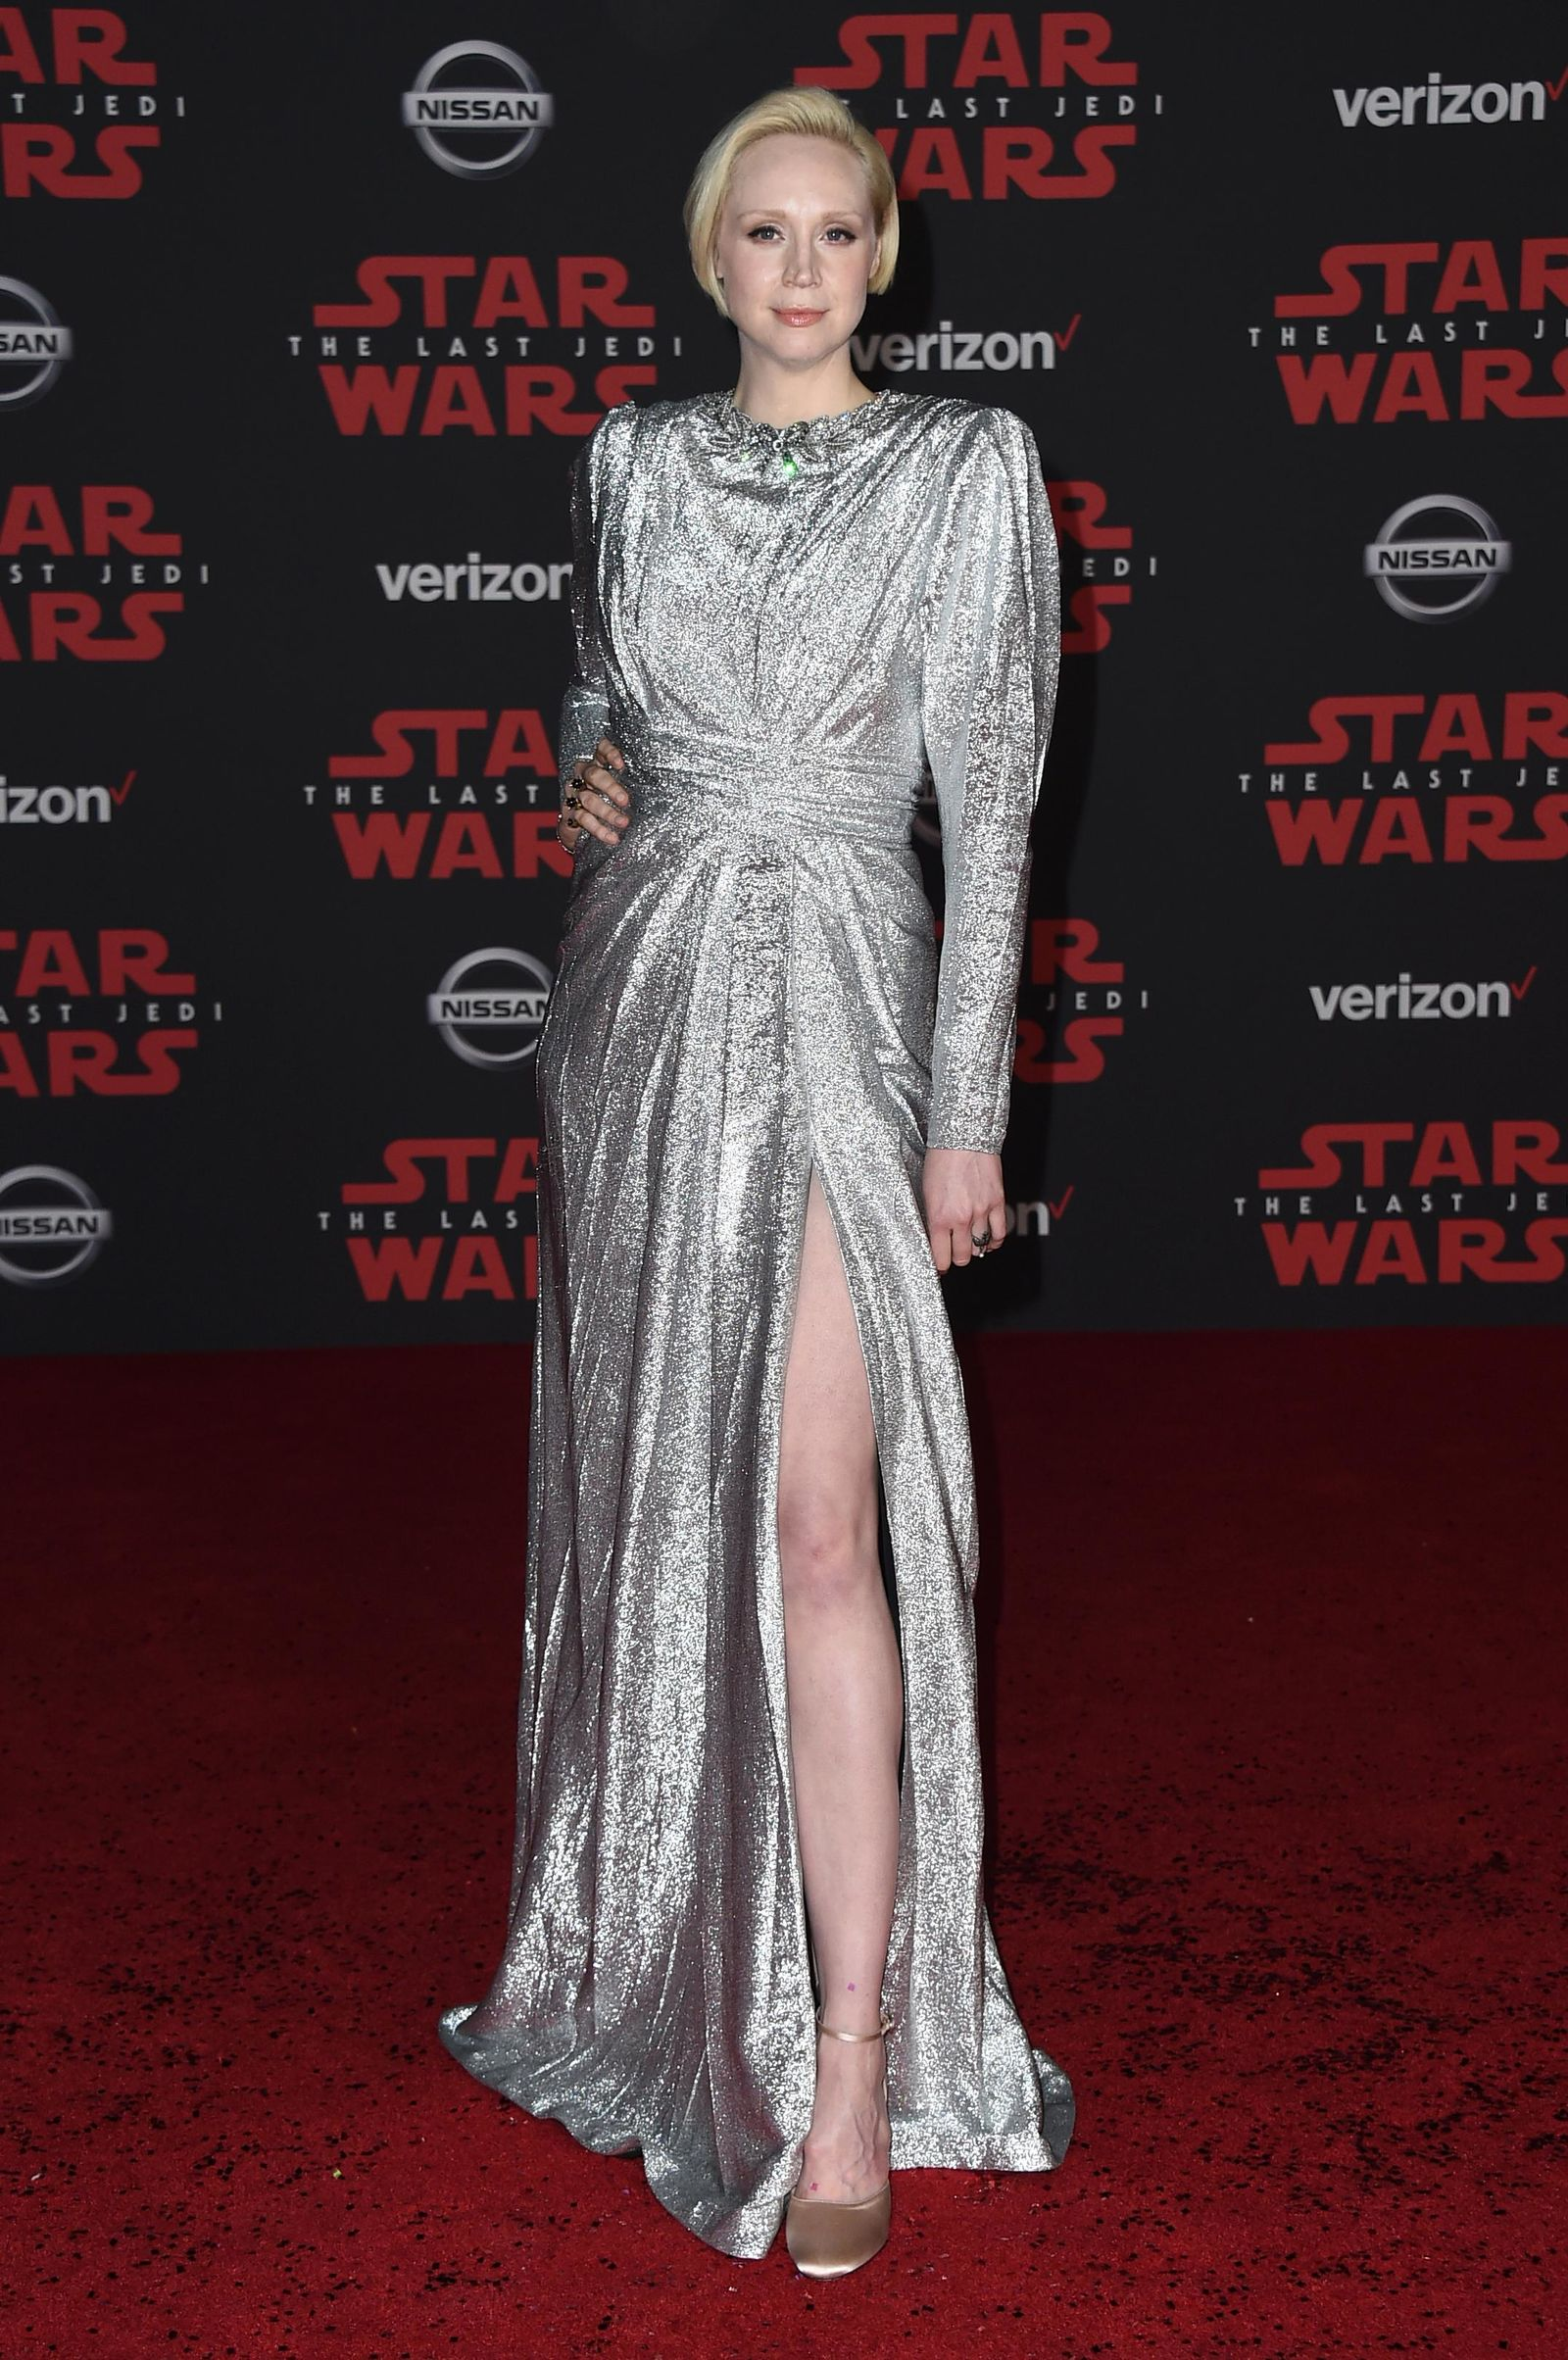 "Gwendoline Christie arrives at the Los Angeles premiere of ""Star Wars: The Last Jedi"" at the Shrine Auditorium on Saturday, Dec. 9, 2017 in Los Angeles. (Photo by Jordan Strauss/Invision/AP)"